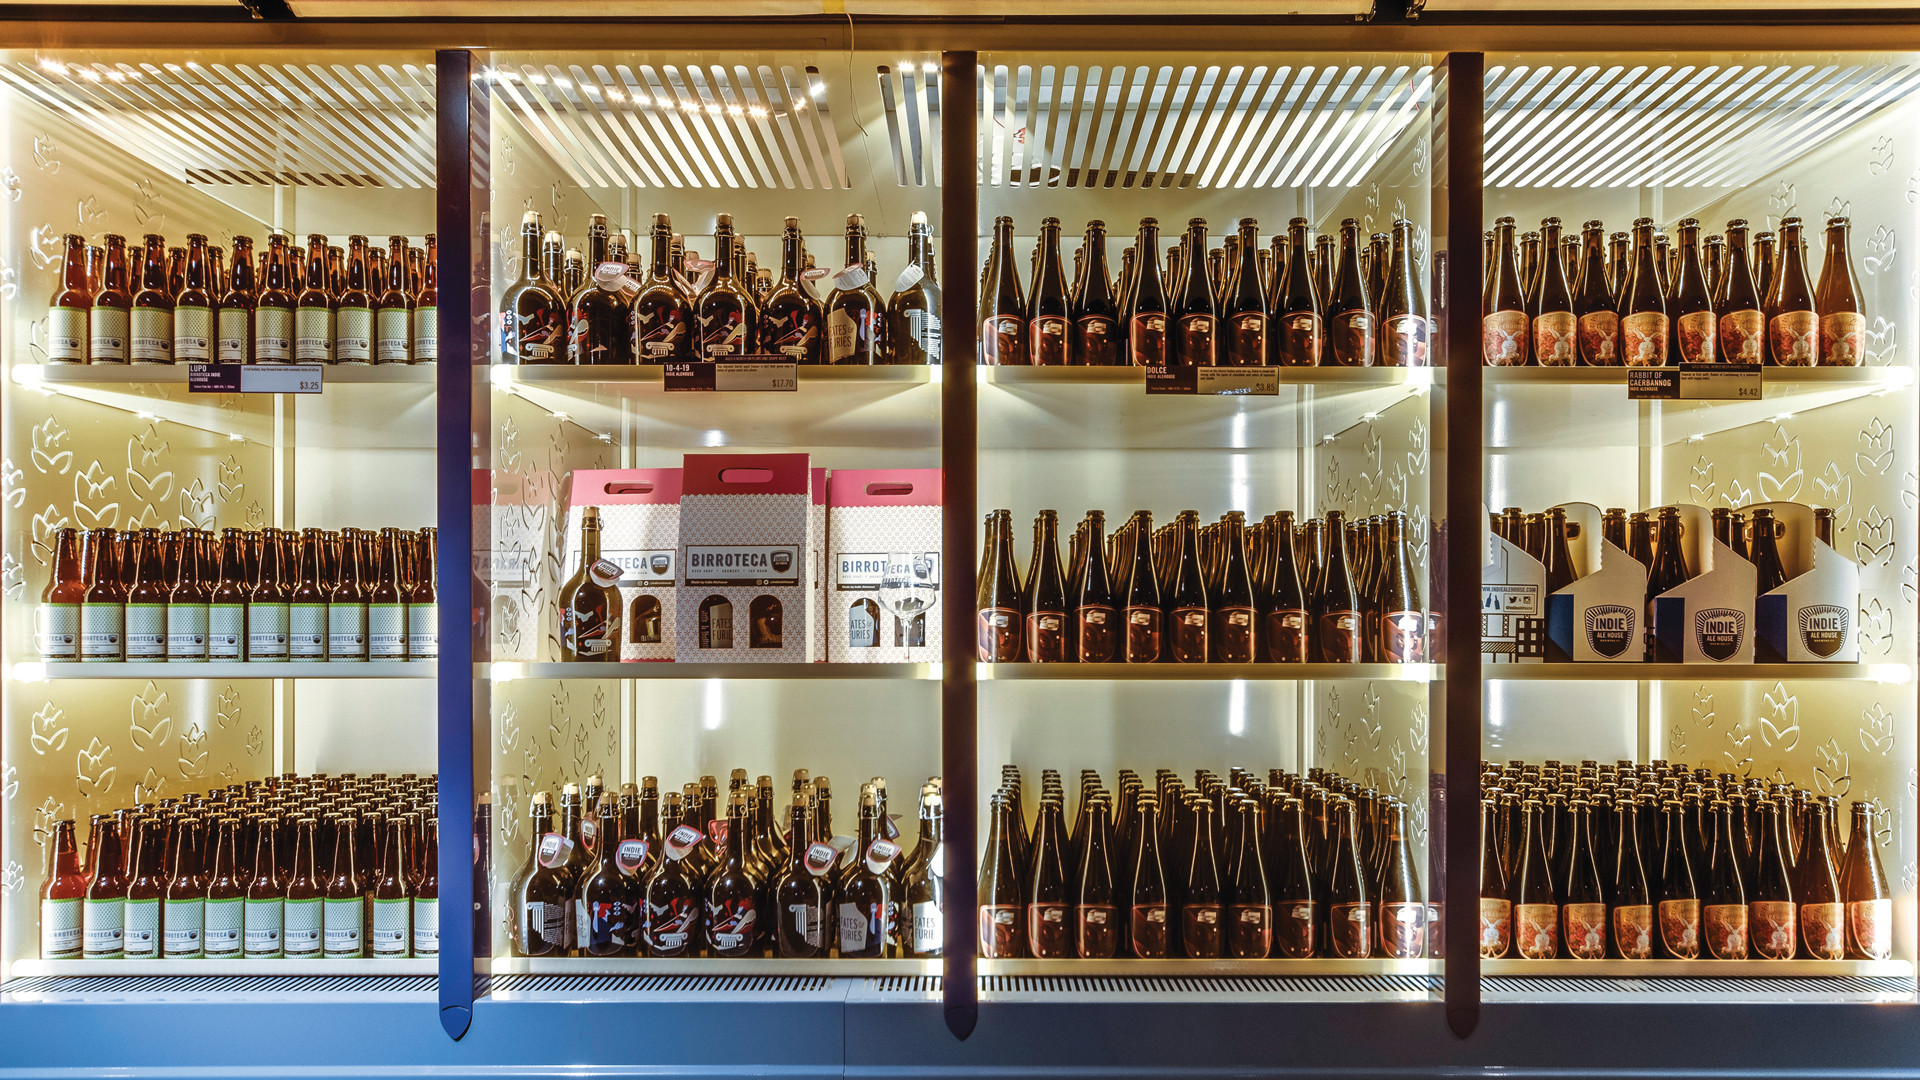 Alcohol delivery in Toronto | A fridge stocked with beer at Birroteca, the brewery and bottleshop inside of Eataly in Toronto